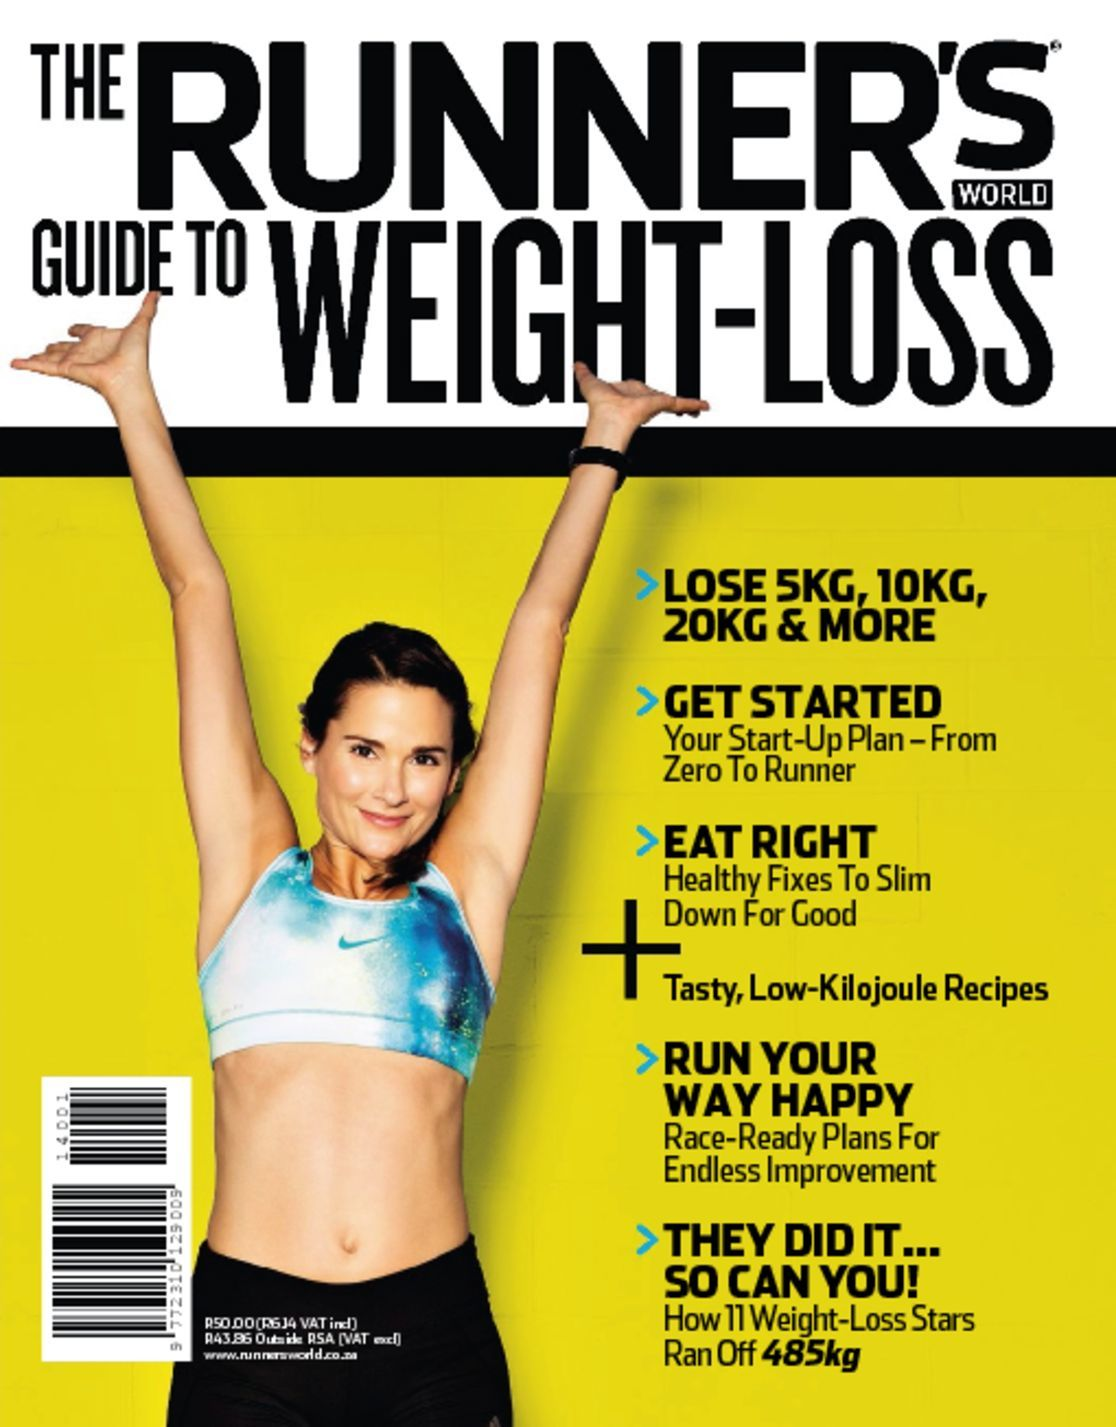 The Runner's World Guide to Weight Loss Digital